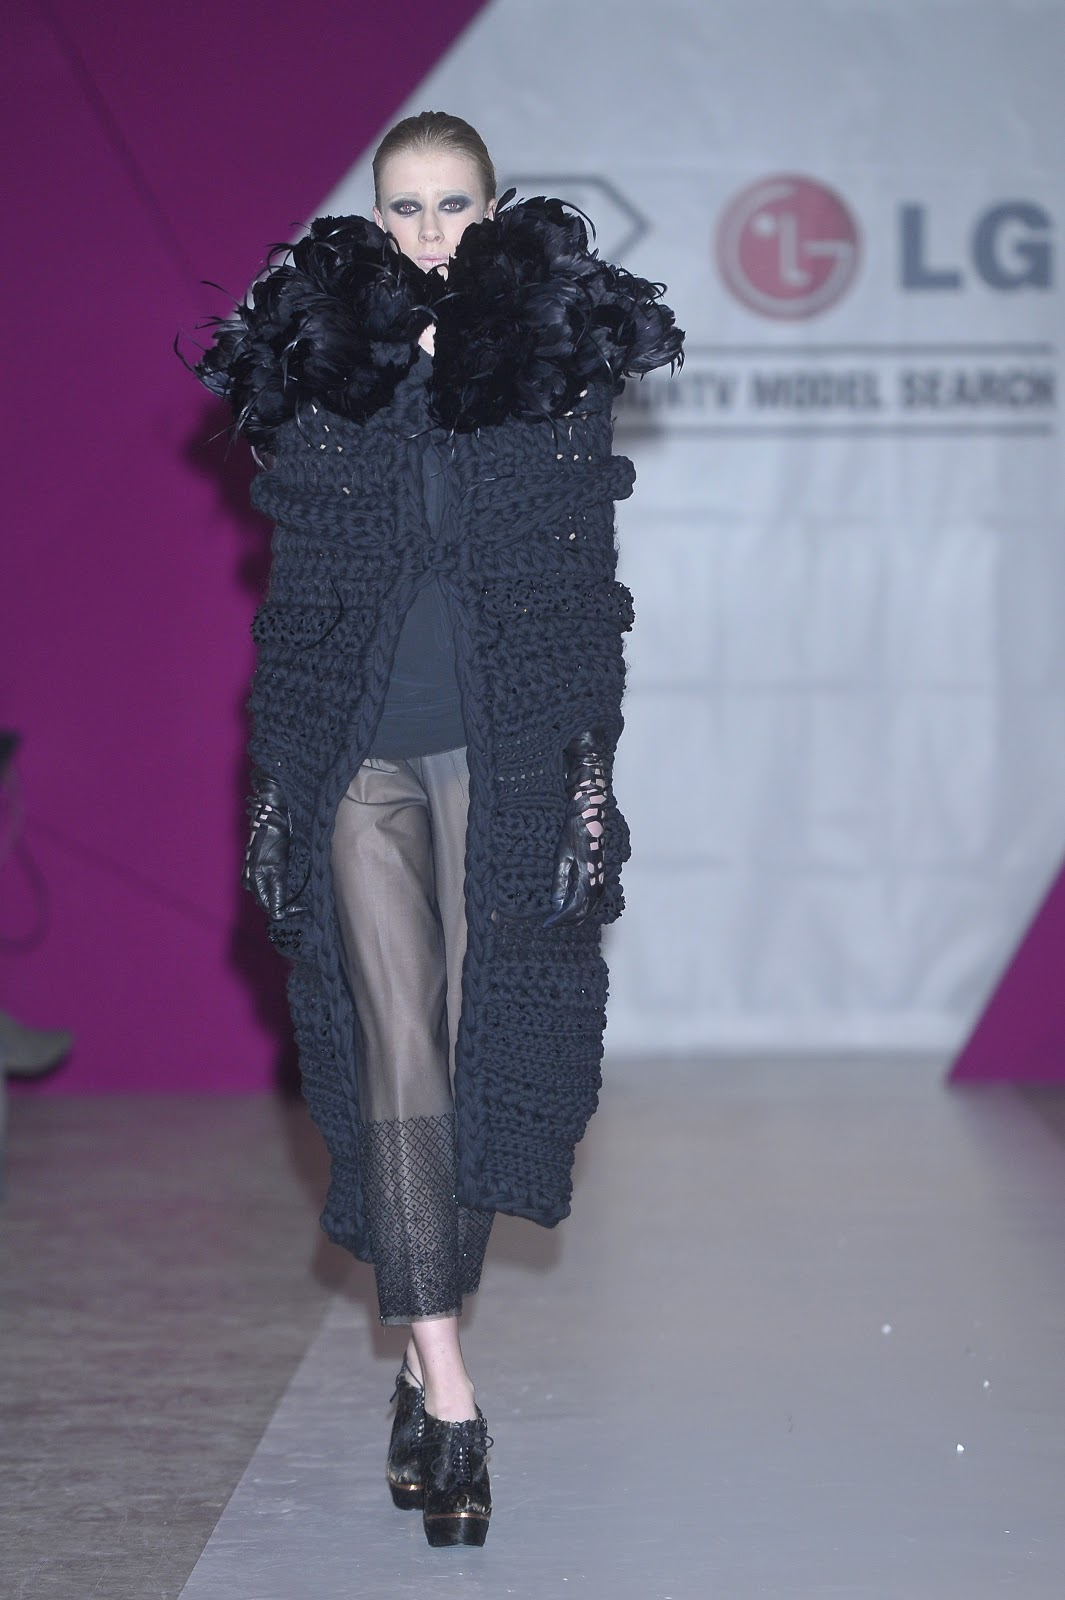 akpa20130130_lg_fashion_tv_2819.jpg